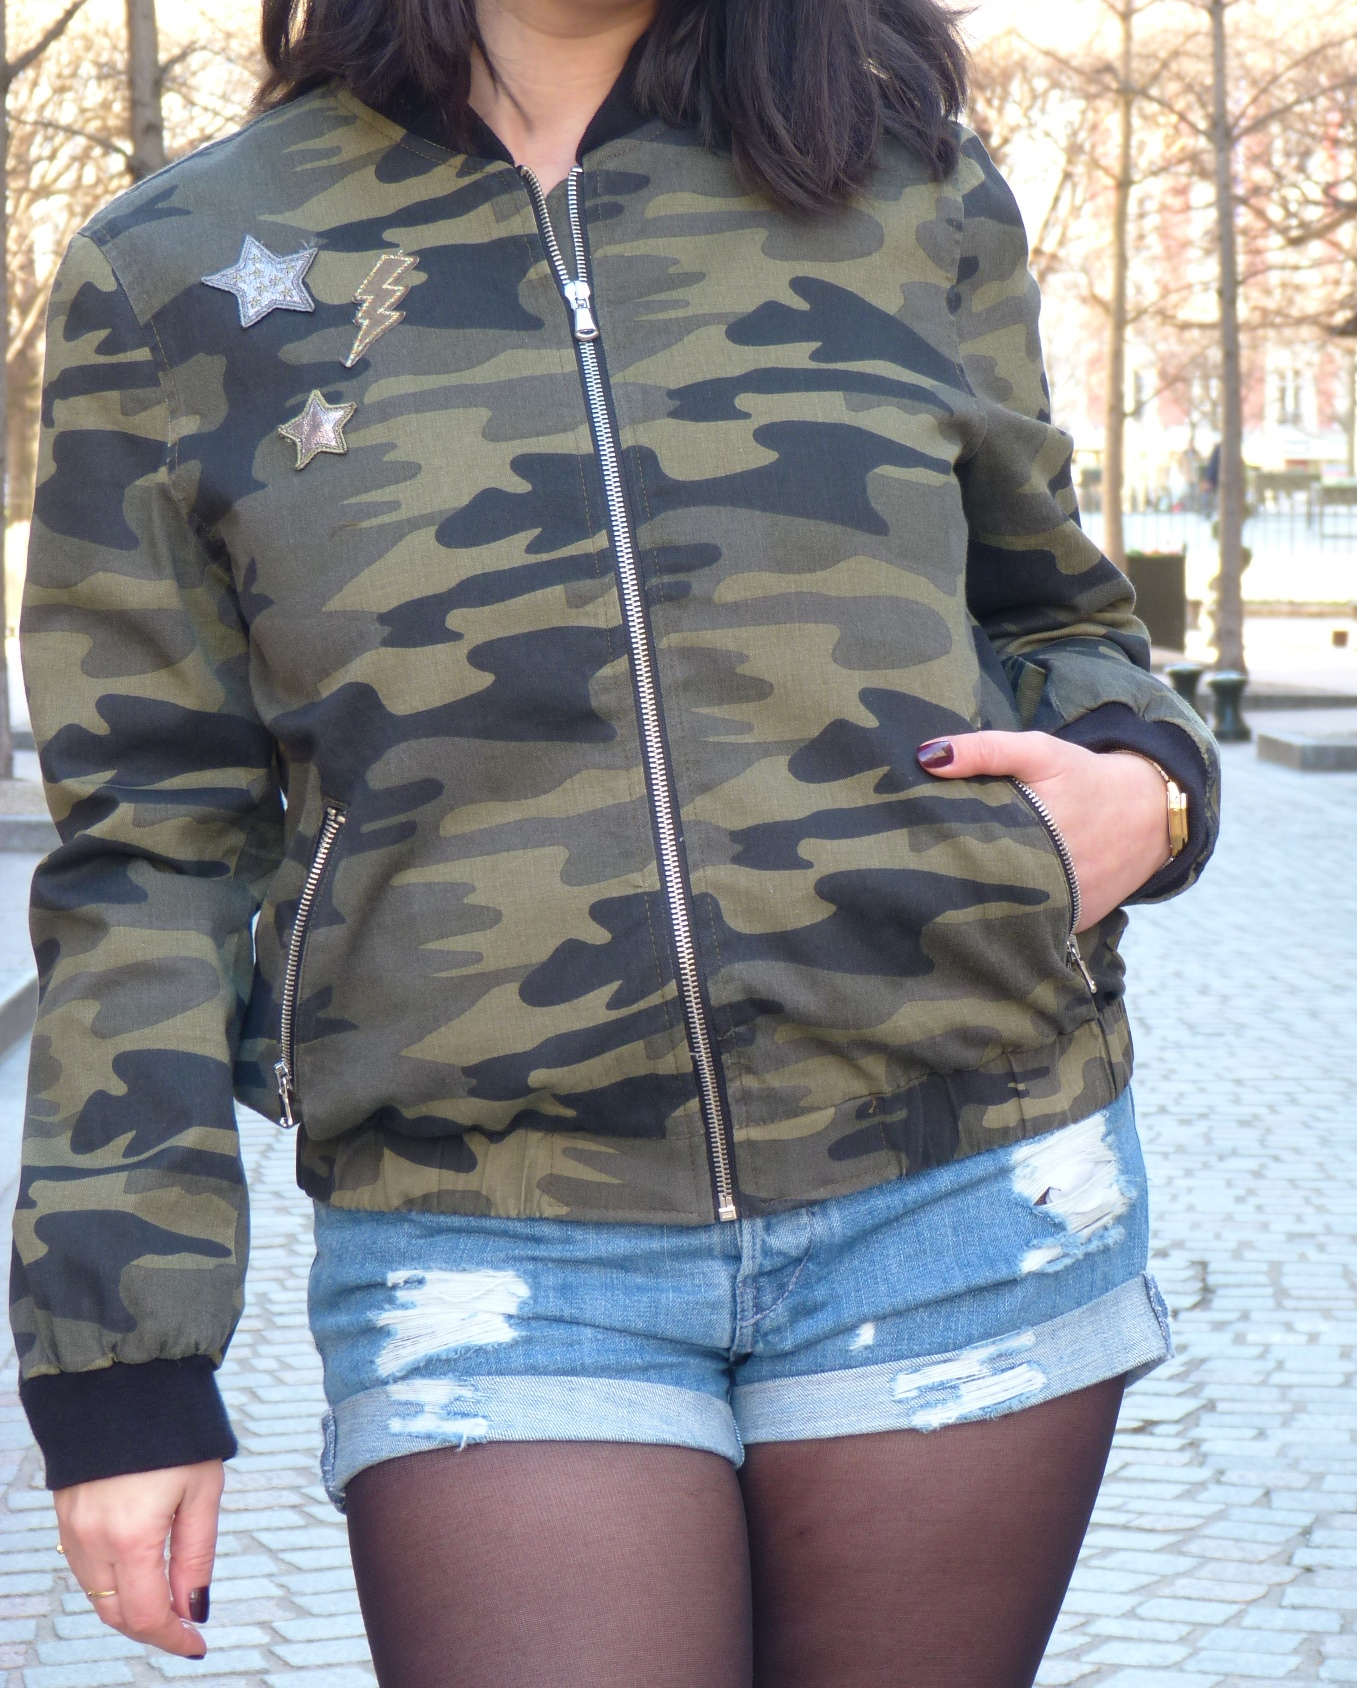 Zara Army Jacket